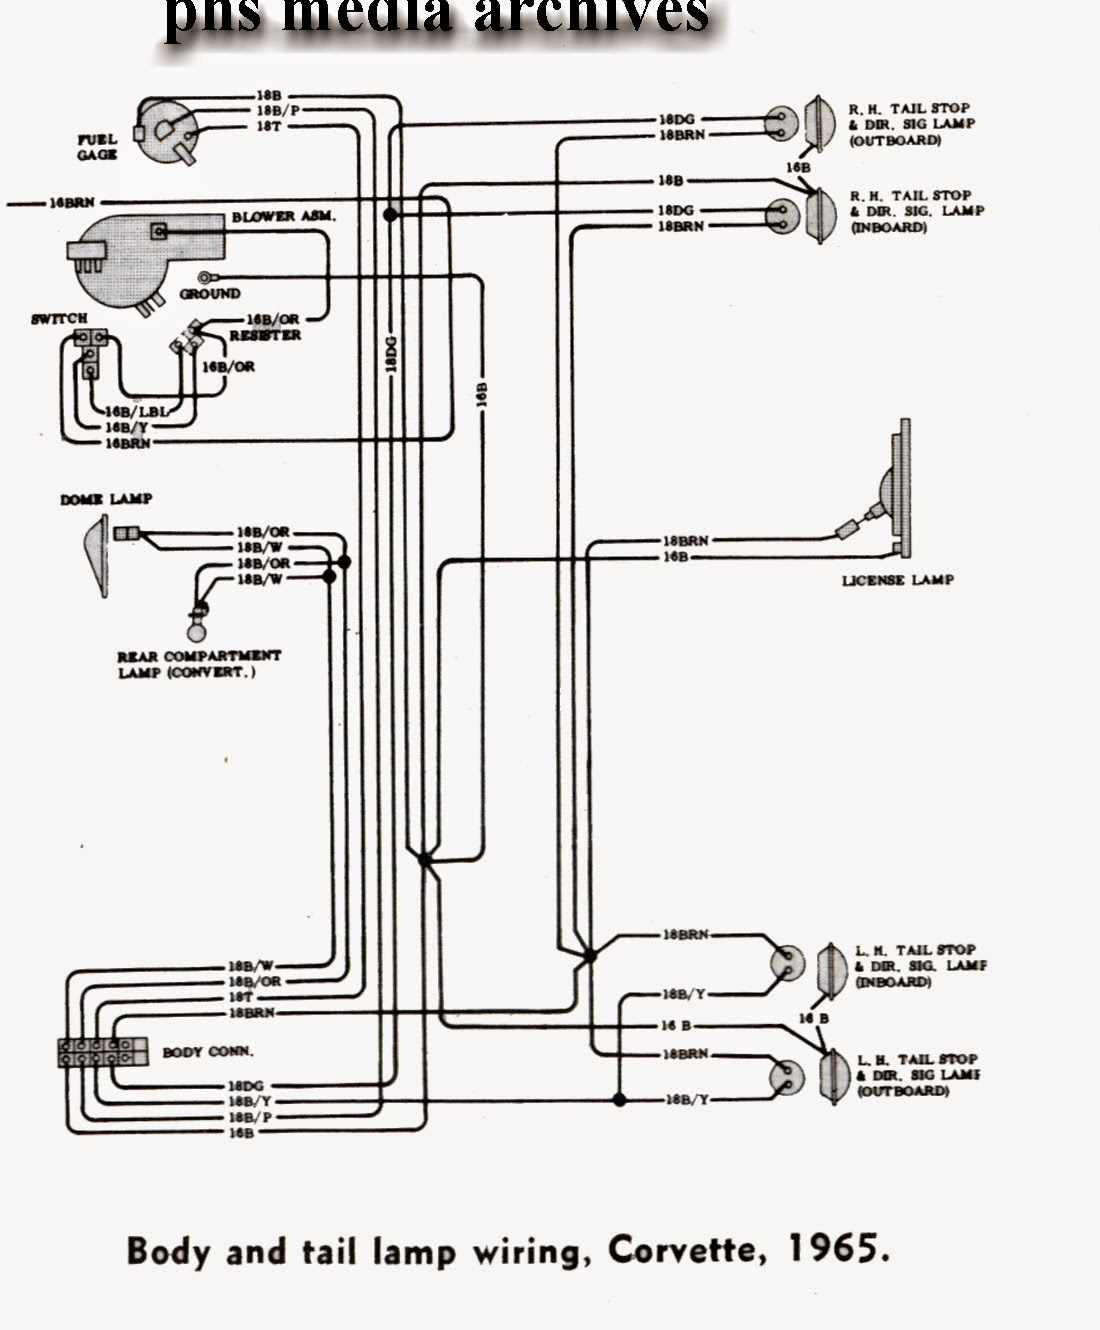 1965 Corvette Wiring Diagram: 1962 Corvette Rear Tail Lights Wiring Diagram At Nayabfun.com